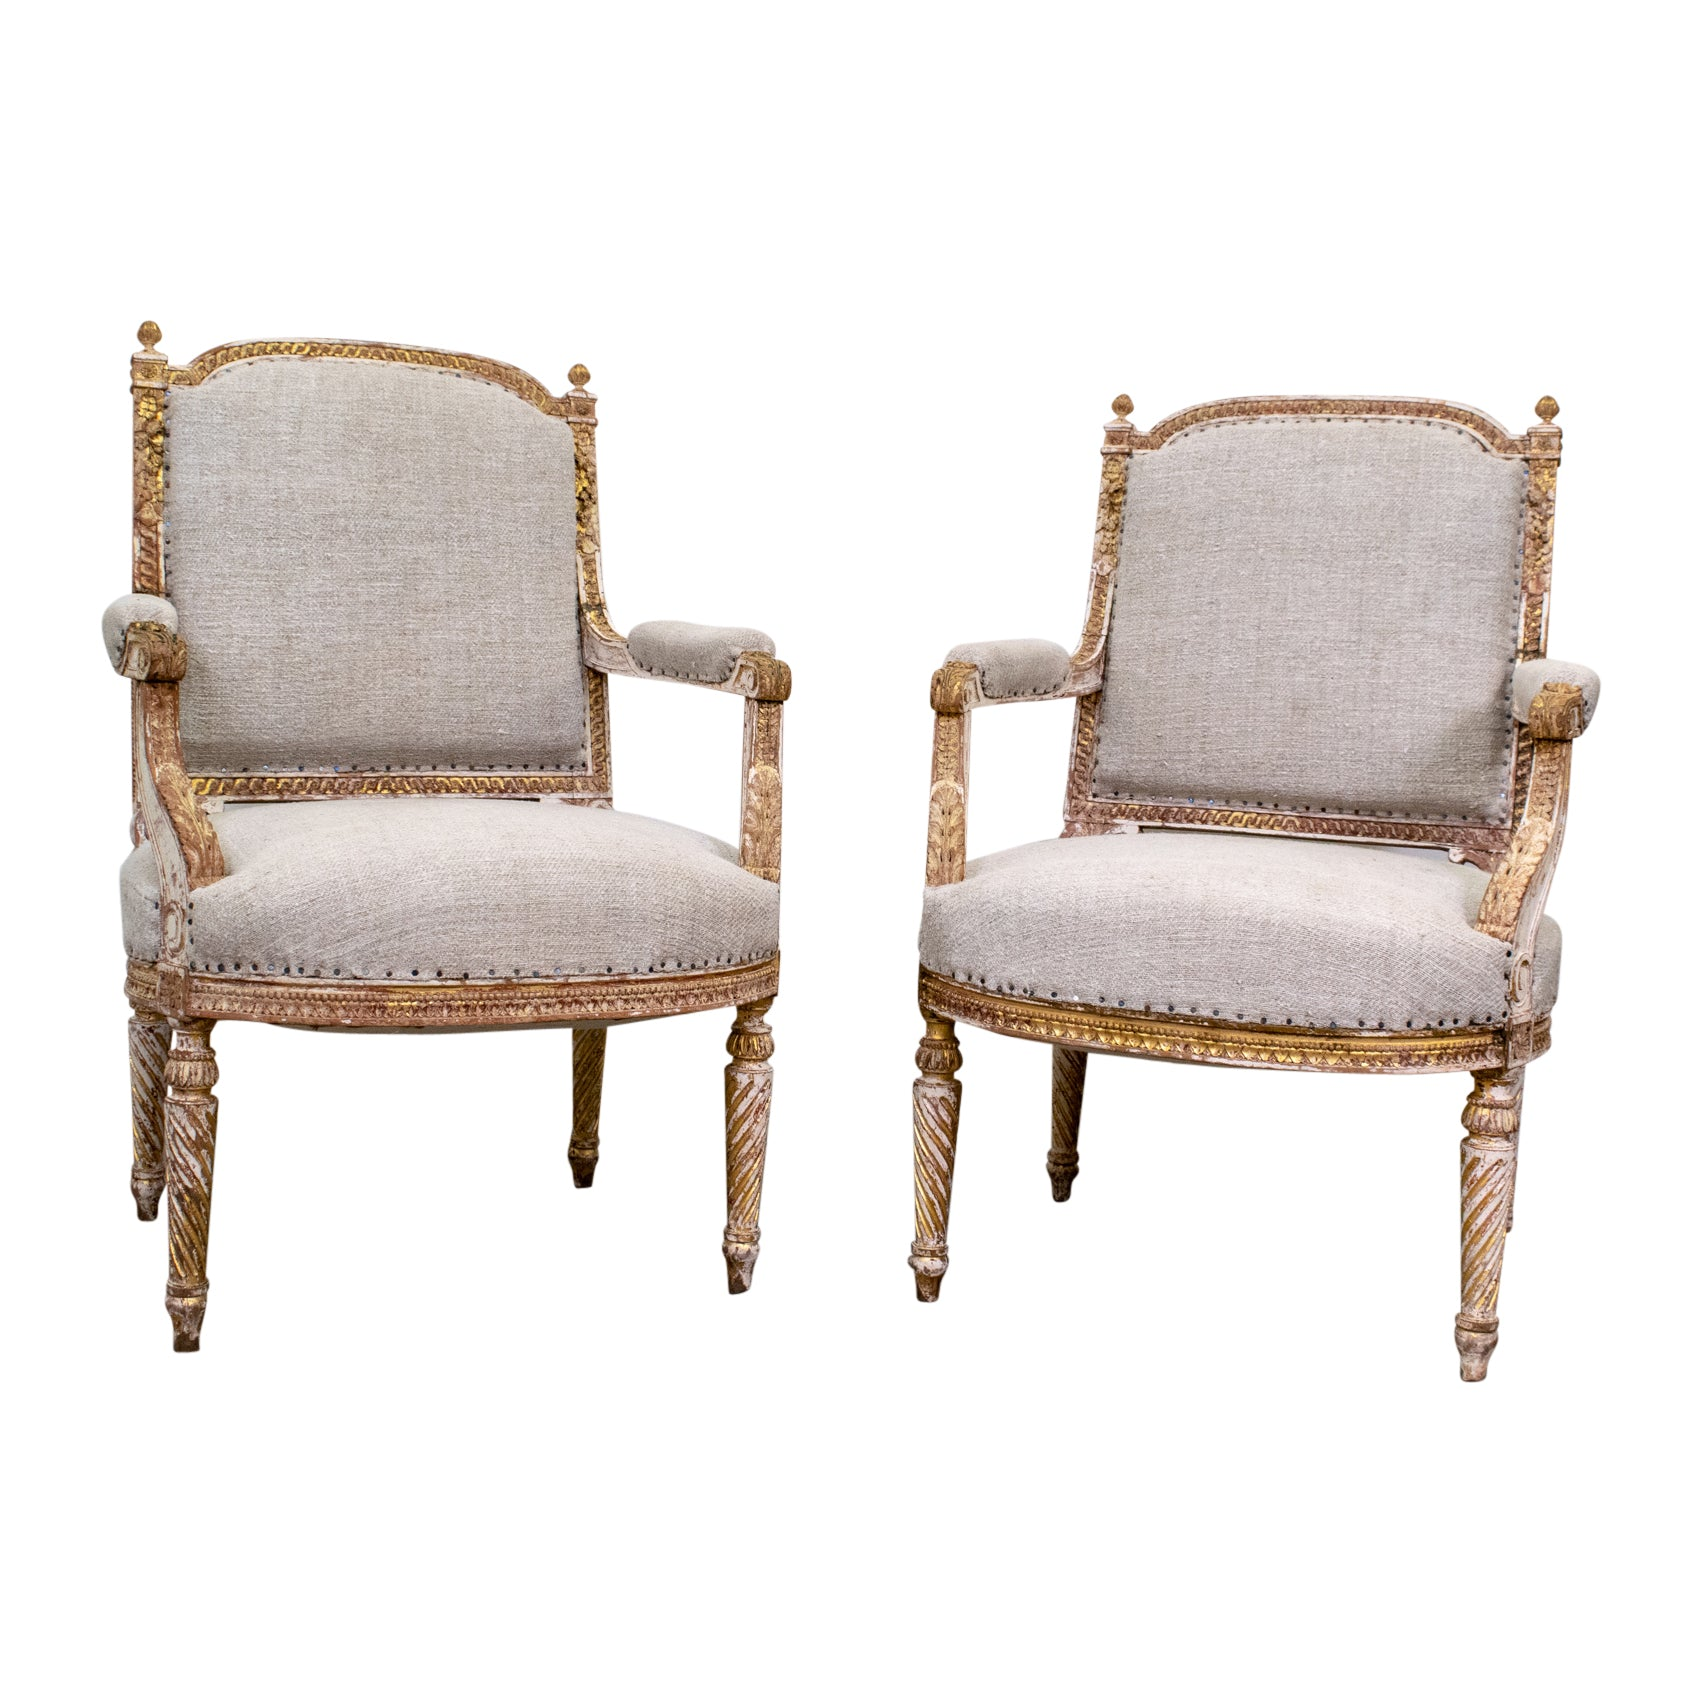 Pair of Louis XVI Style Gilt and white Armchair